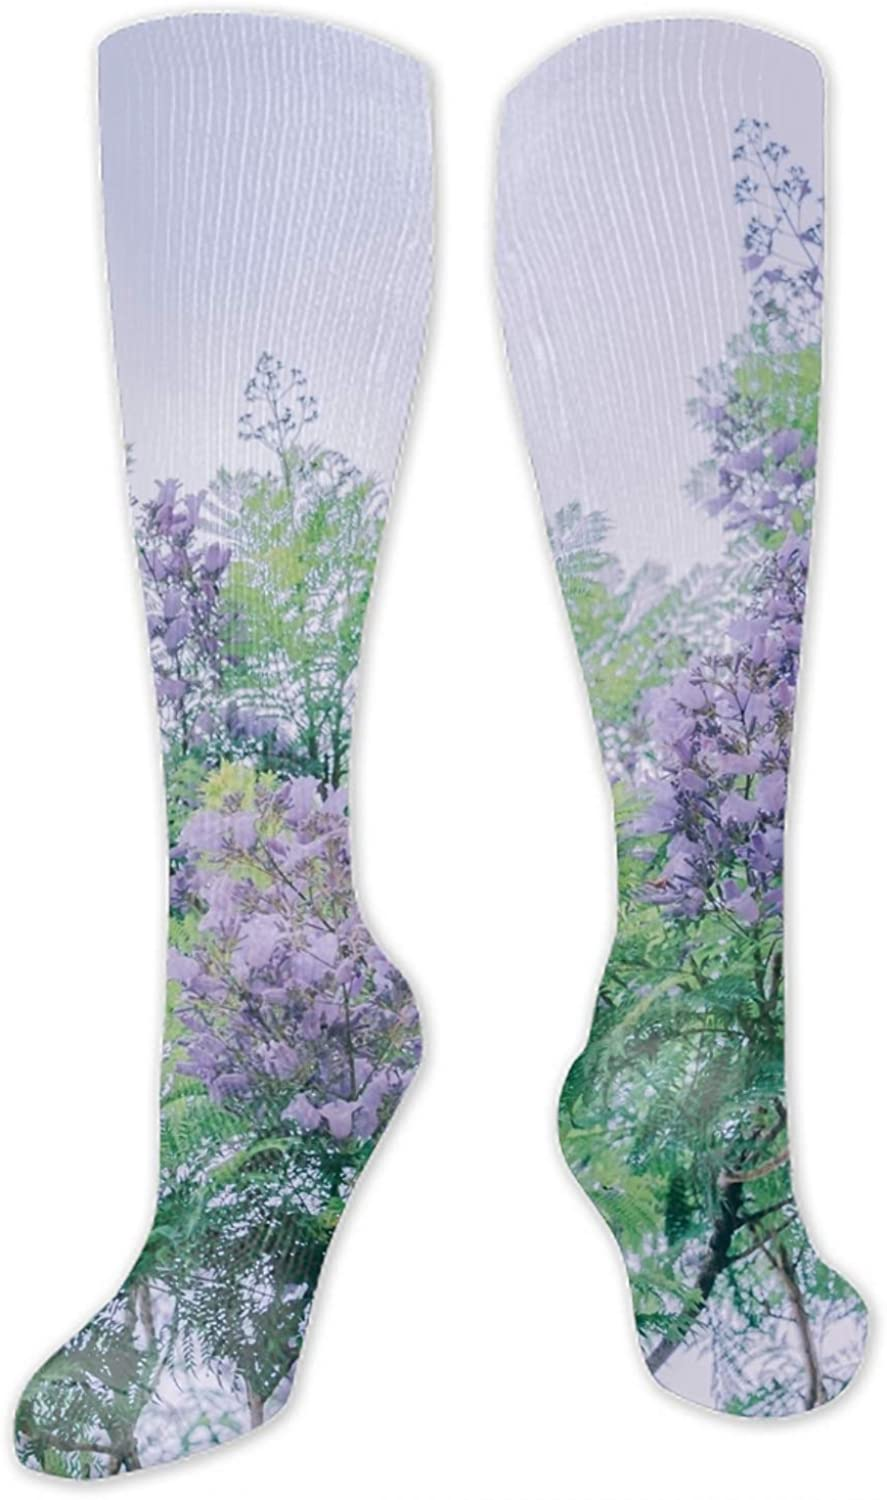 Abstract Painting Fashion 3D Print Funky Patterned Long Socks Gray Scissor Envelope Pencils